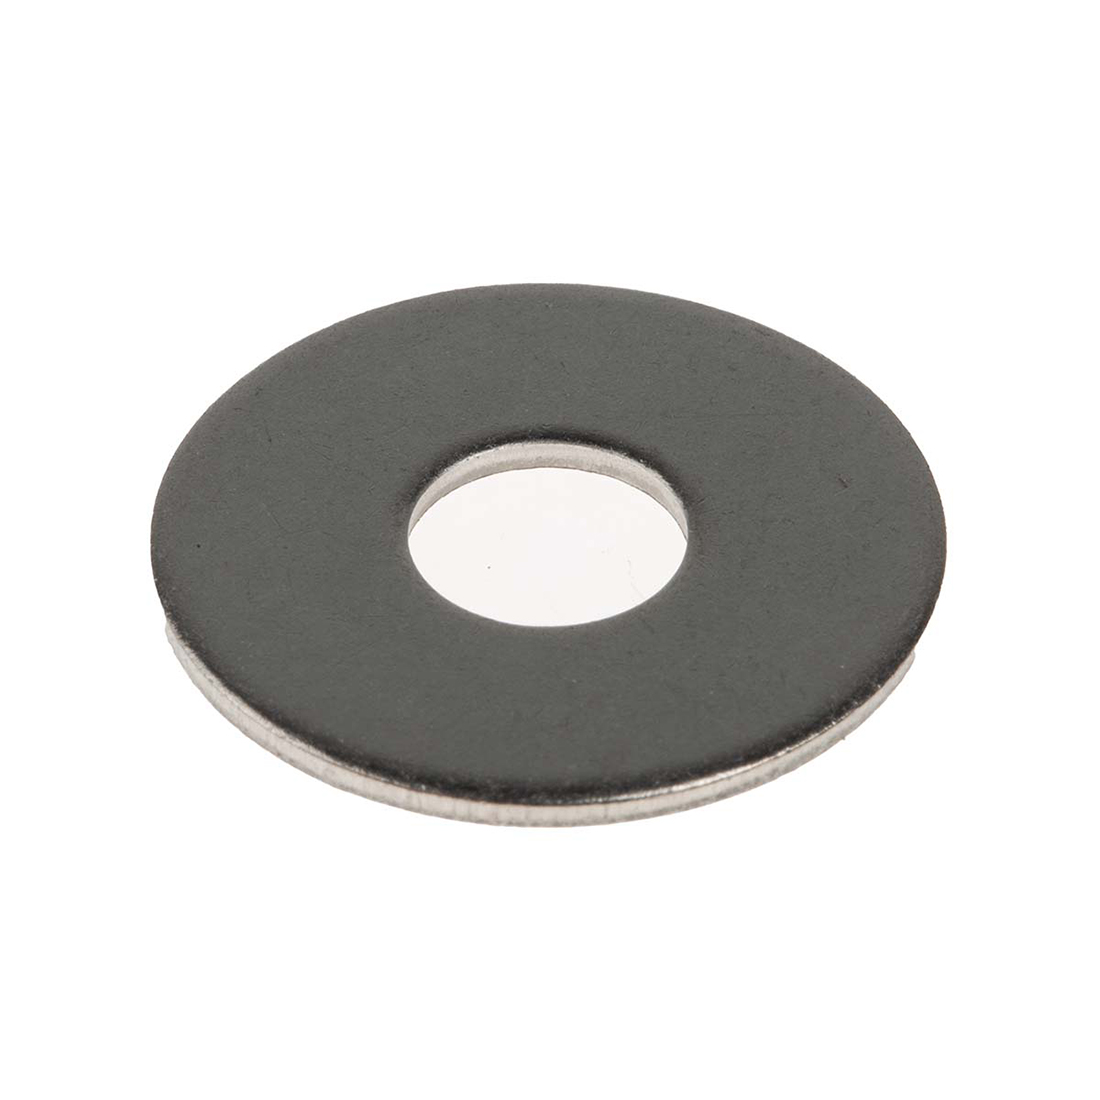 Plain Stainless Steel Mudguard Washer, M8 x 24mm, 2mm Thickness - 50 Pack